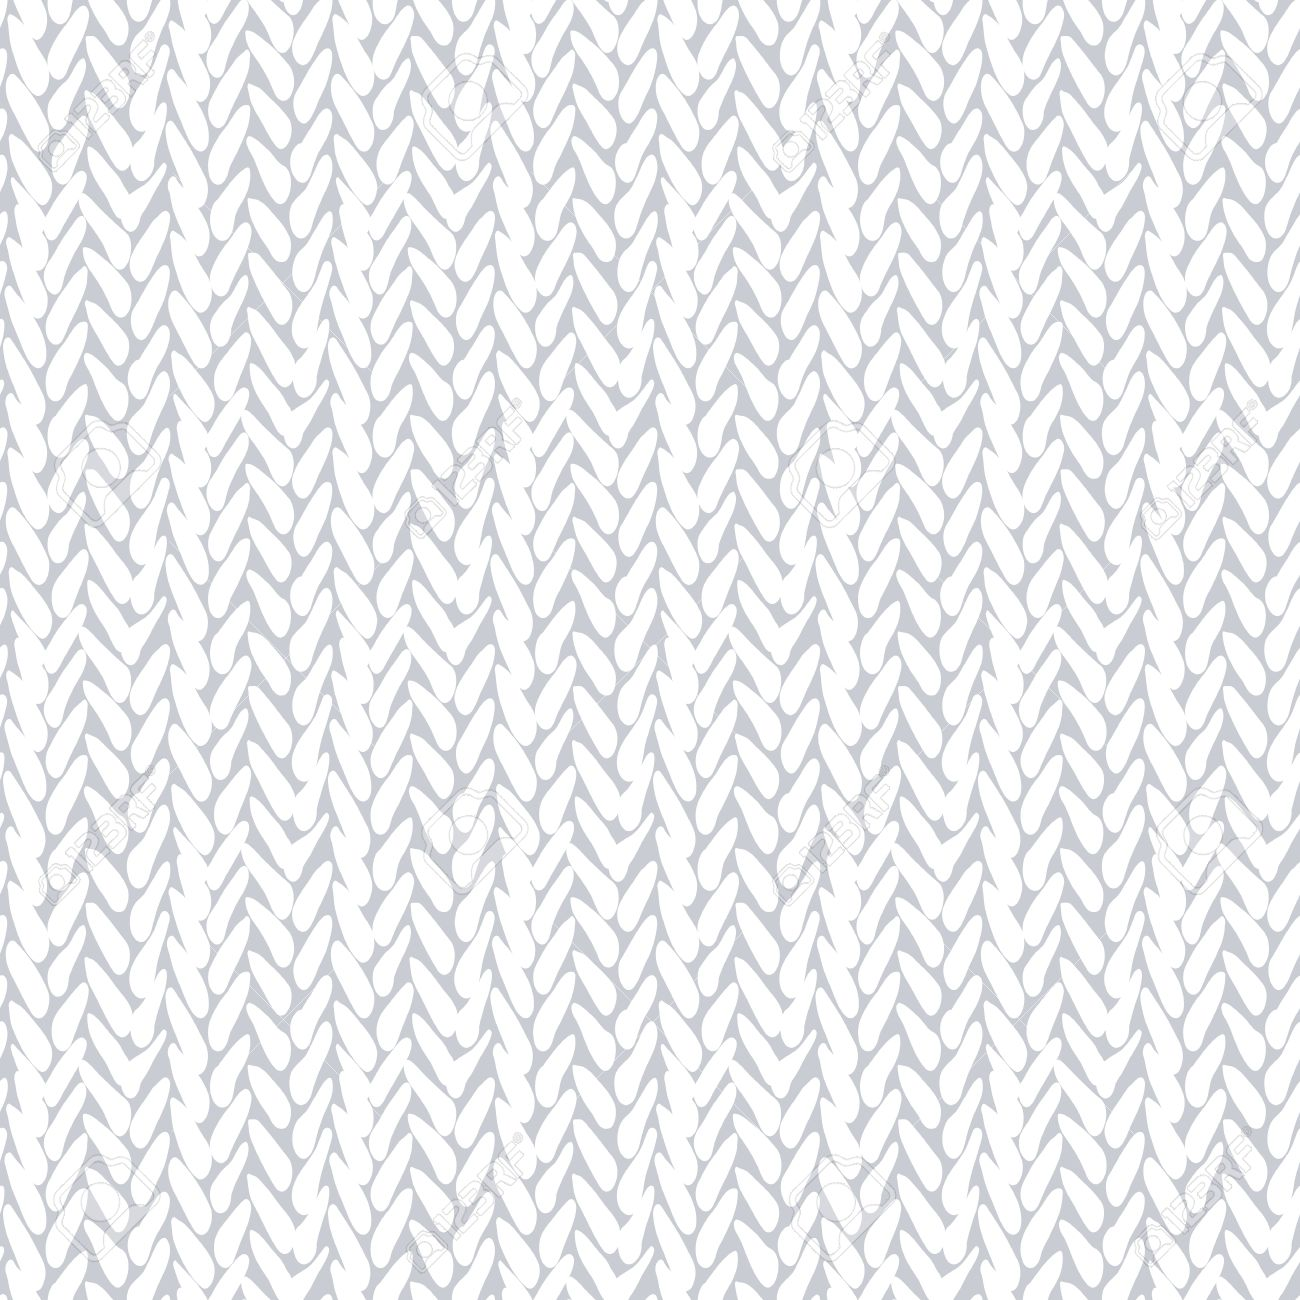 Simple, Bold Seamless Pattern With Stylized Sweater Fabric White ... for White Woven Fabric Texture  54lyp